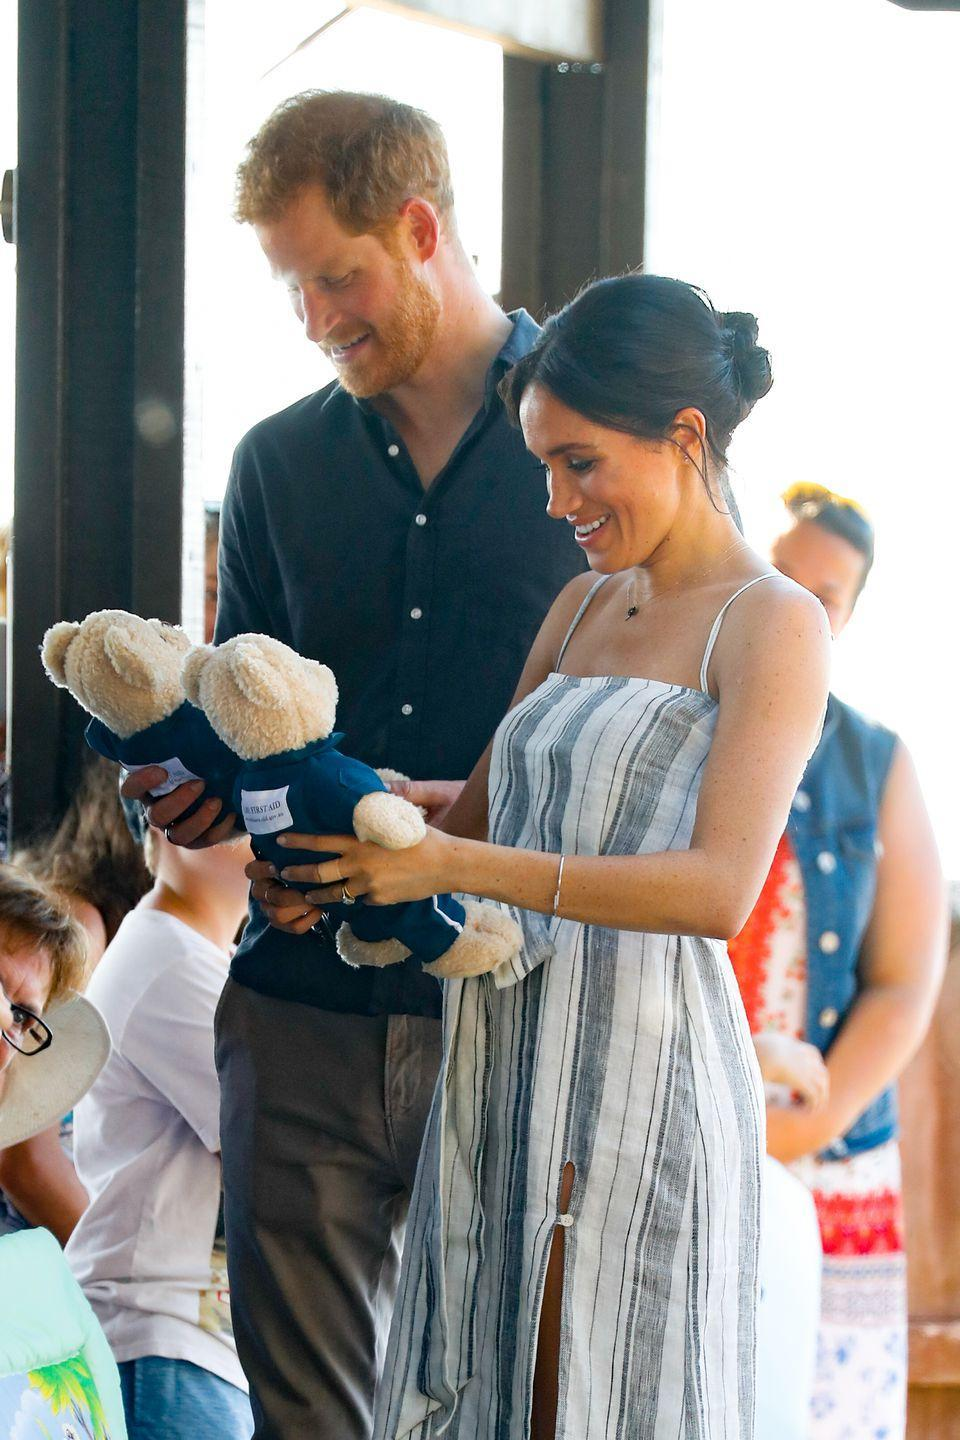 <p>While visiting Fraser Island, they were also gifted with some teddy bears. This baby is going to have so much stuff.</p>